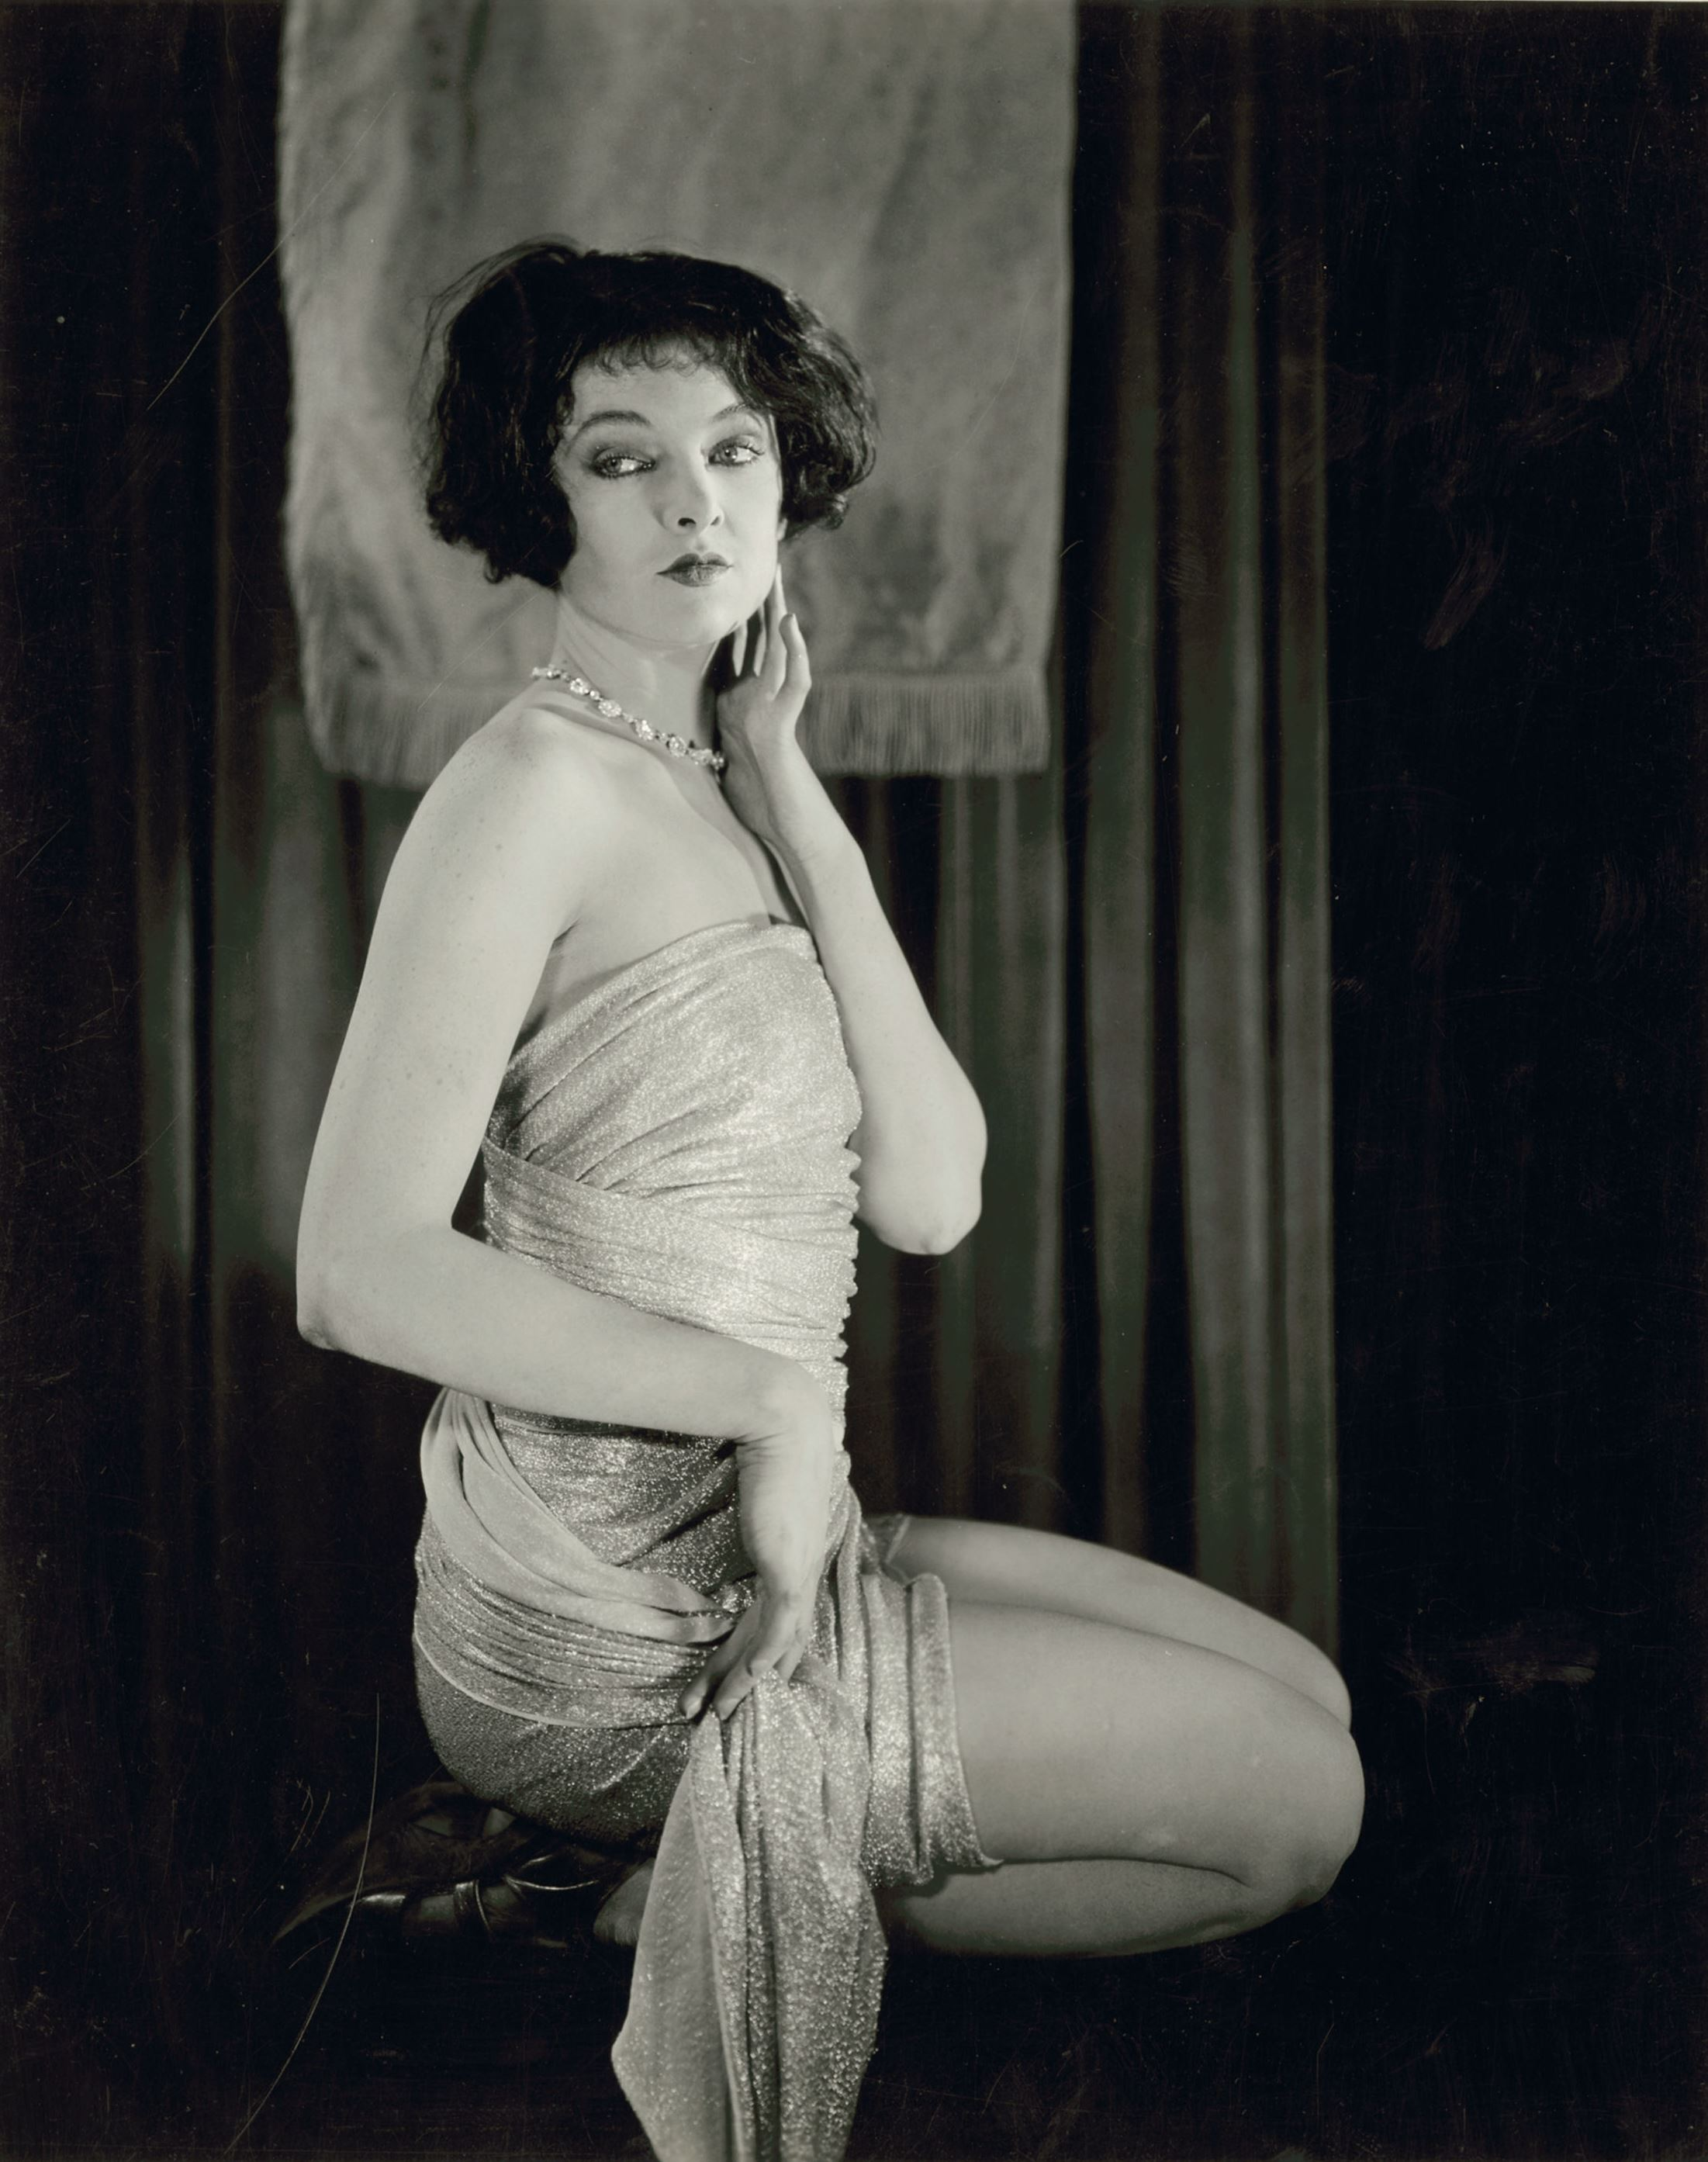 Preston Duncan. Portrait of Myrna Loy  1920's. Via theredlist